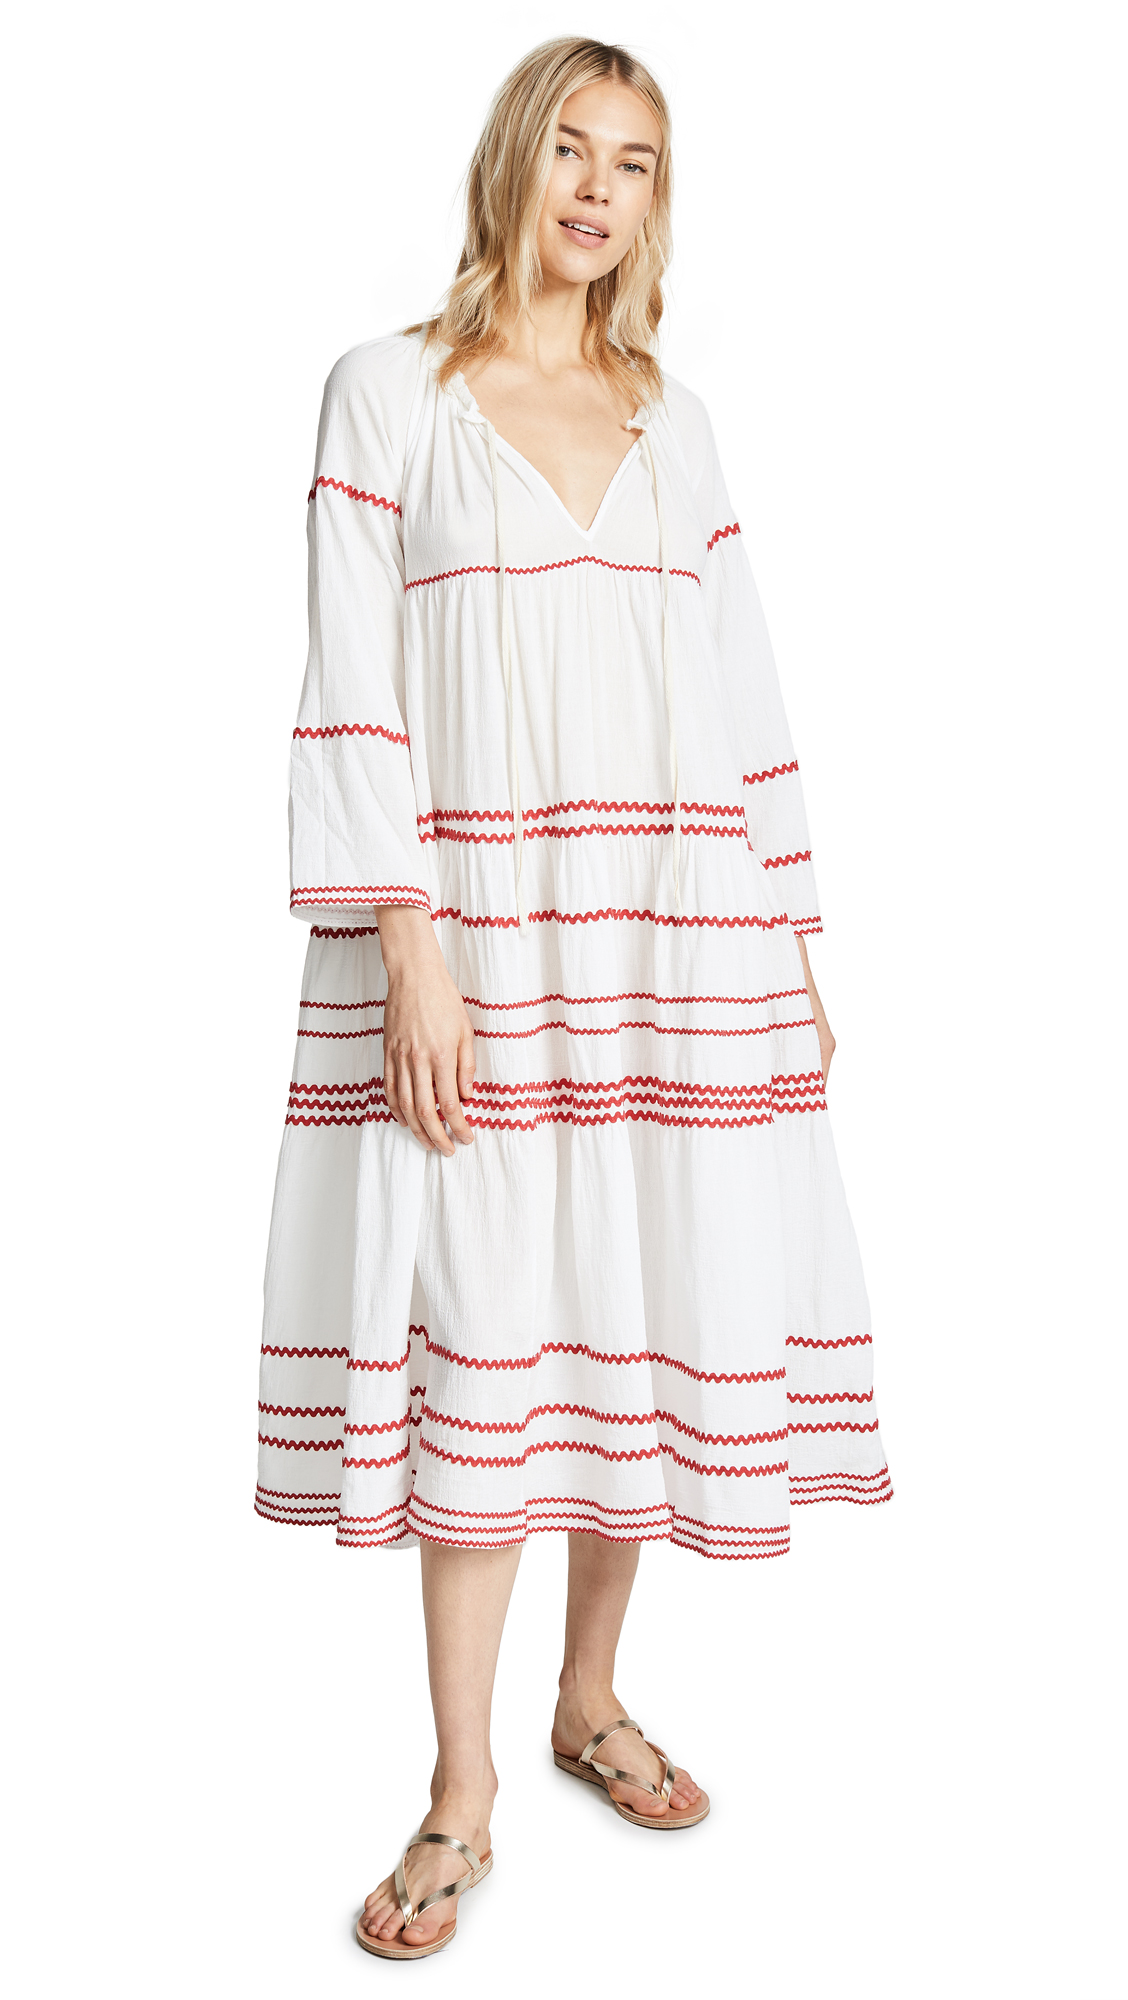 9SEED Majorca Long Sleeve Ruffle Tier Maxi Dress in White/Red